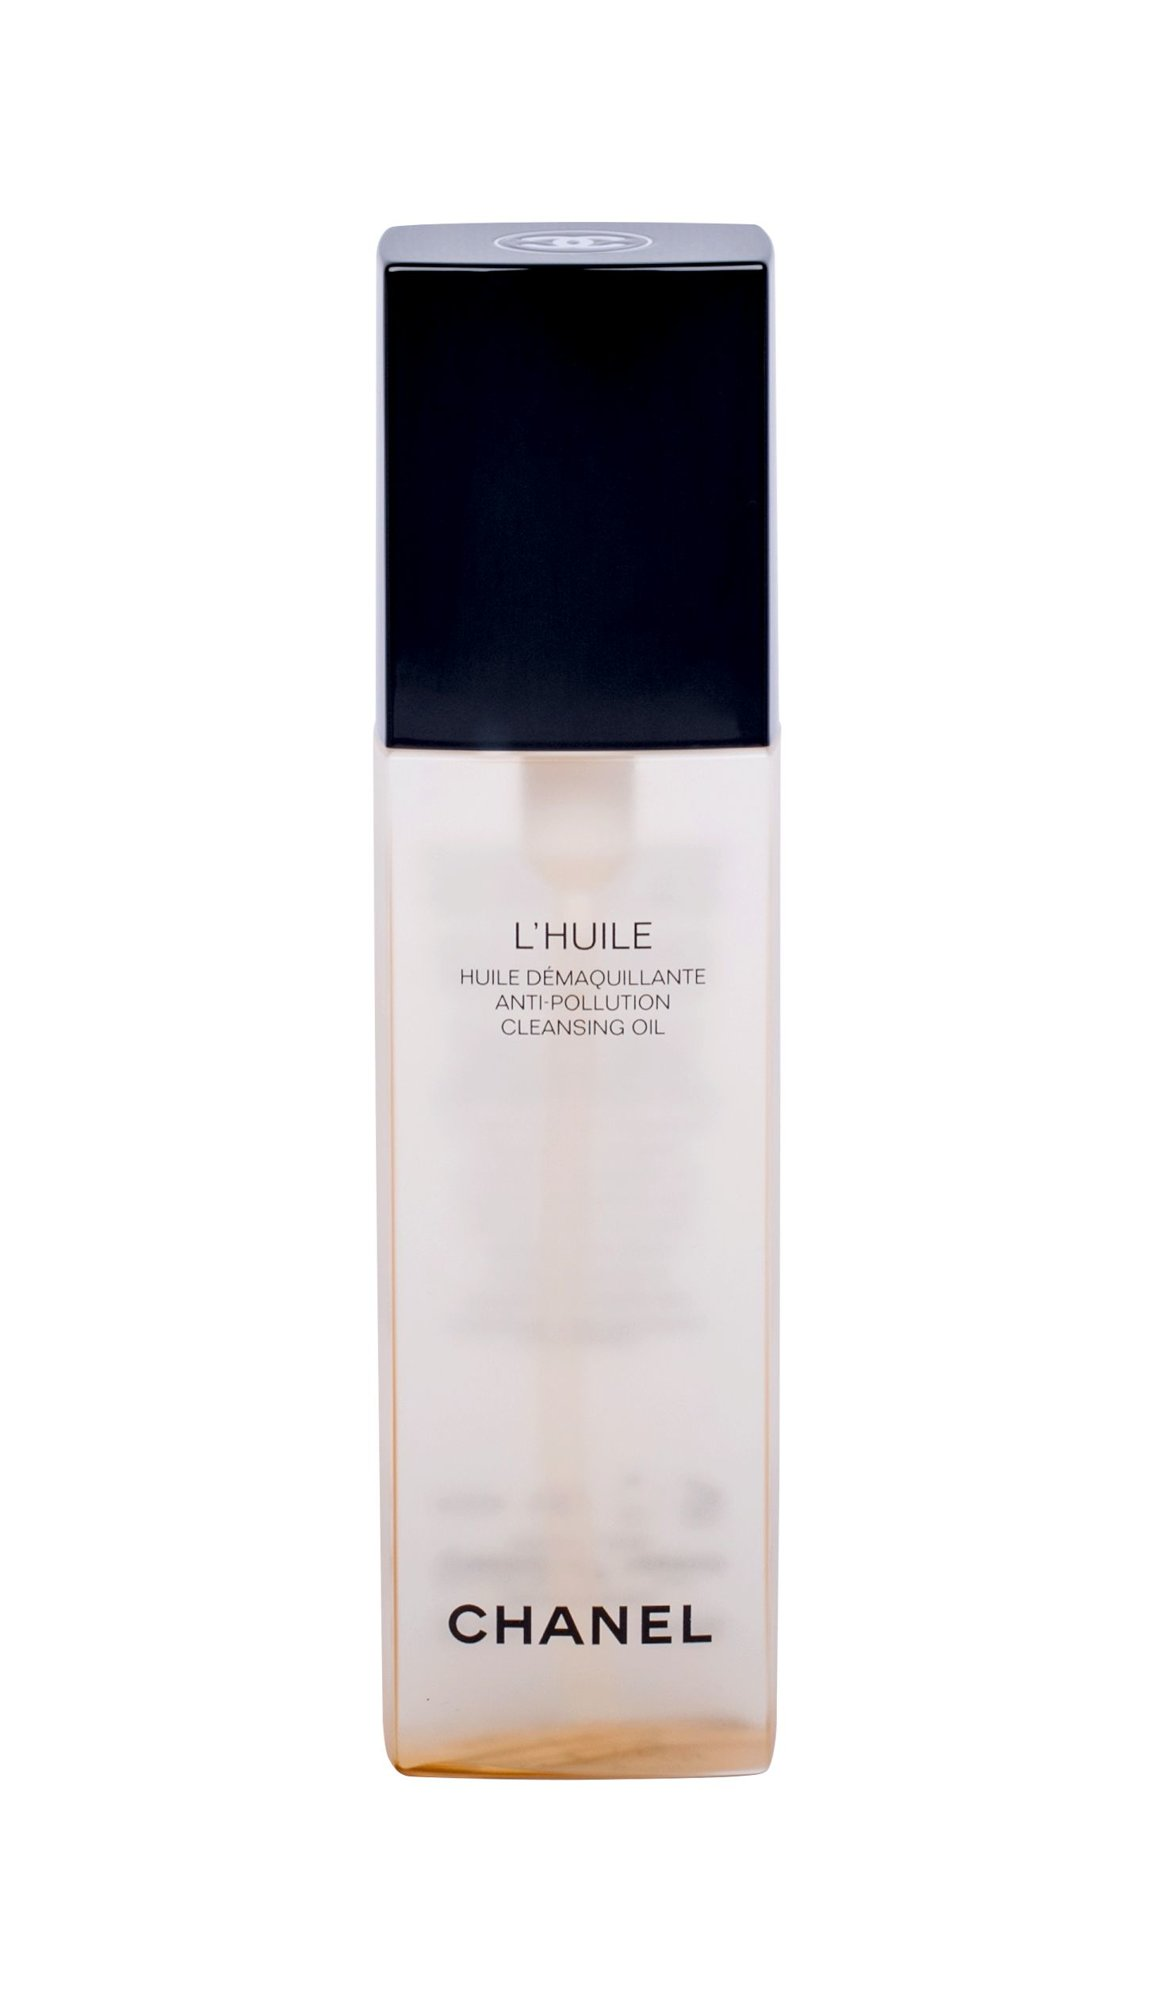 Chanel L´Huile Cleansing Oil 150ml